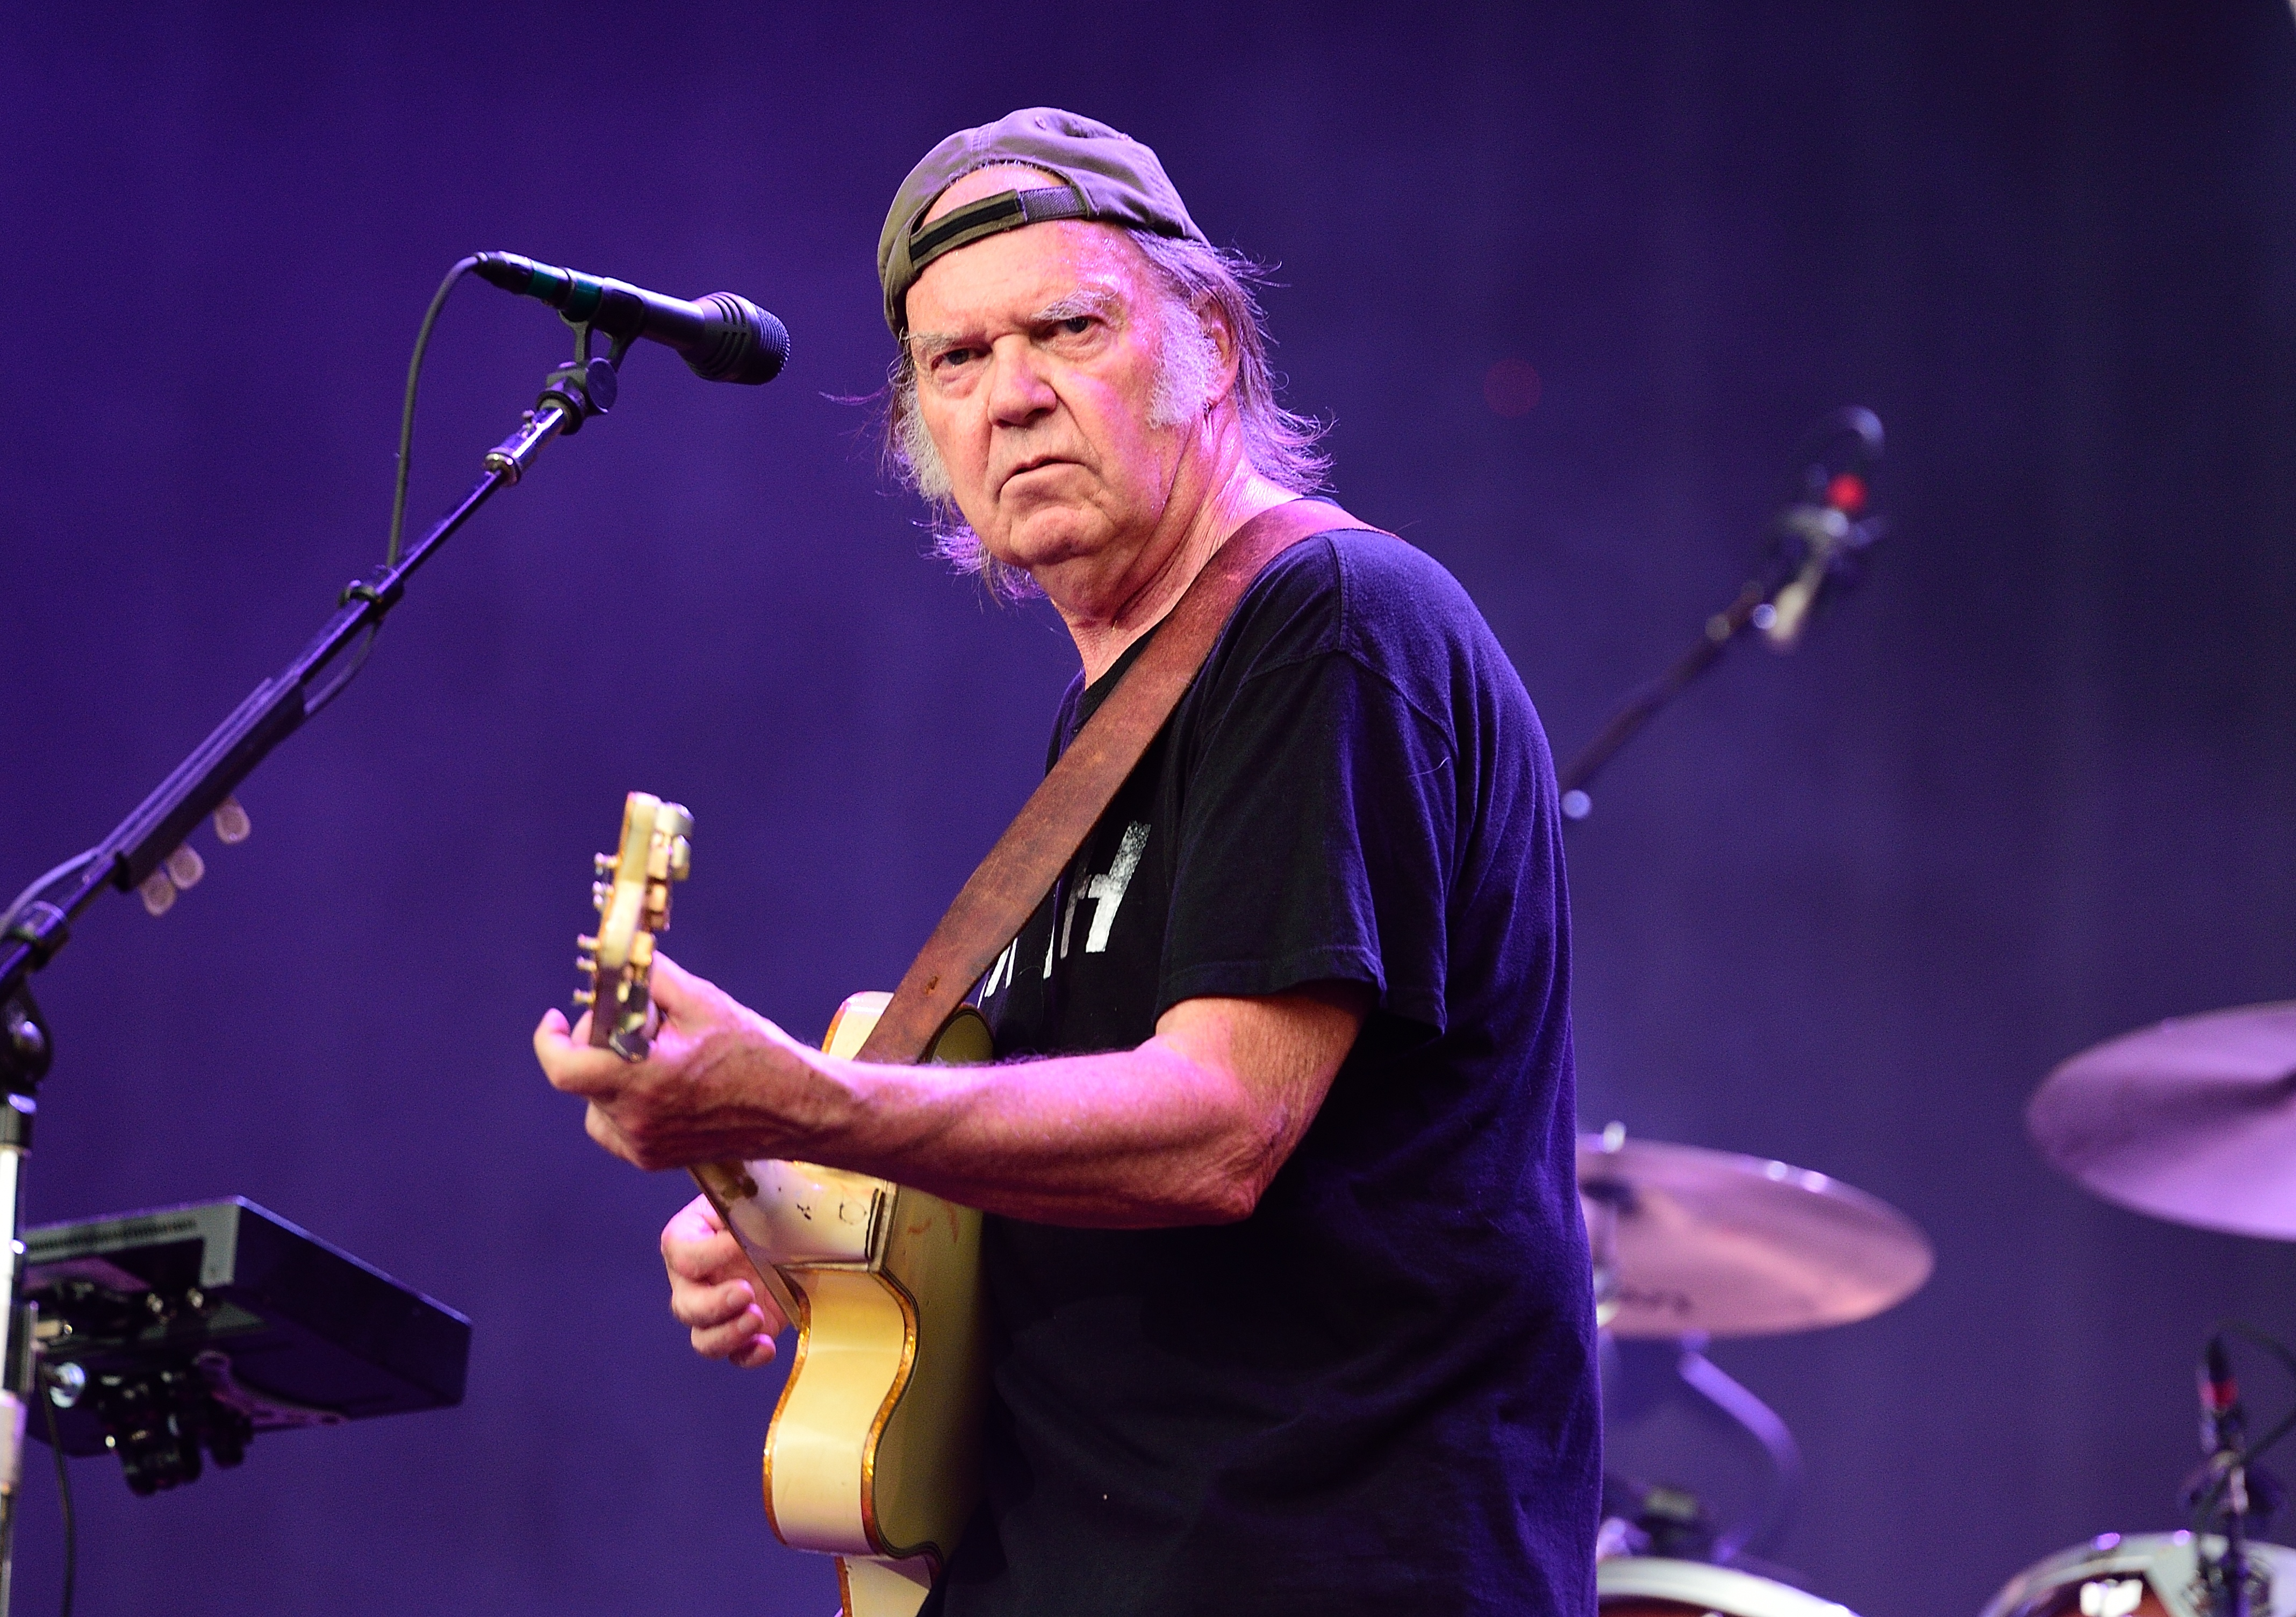 Neil Young of Neil Young and Crazy Horse performs on stage at British Summer Time Festival at Hyde Park on July 12, 2014 in London, United Kingdom.